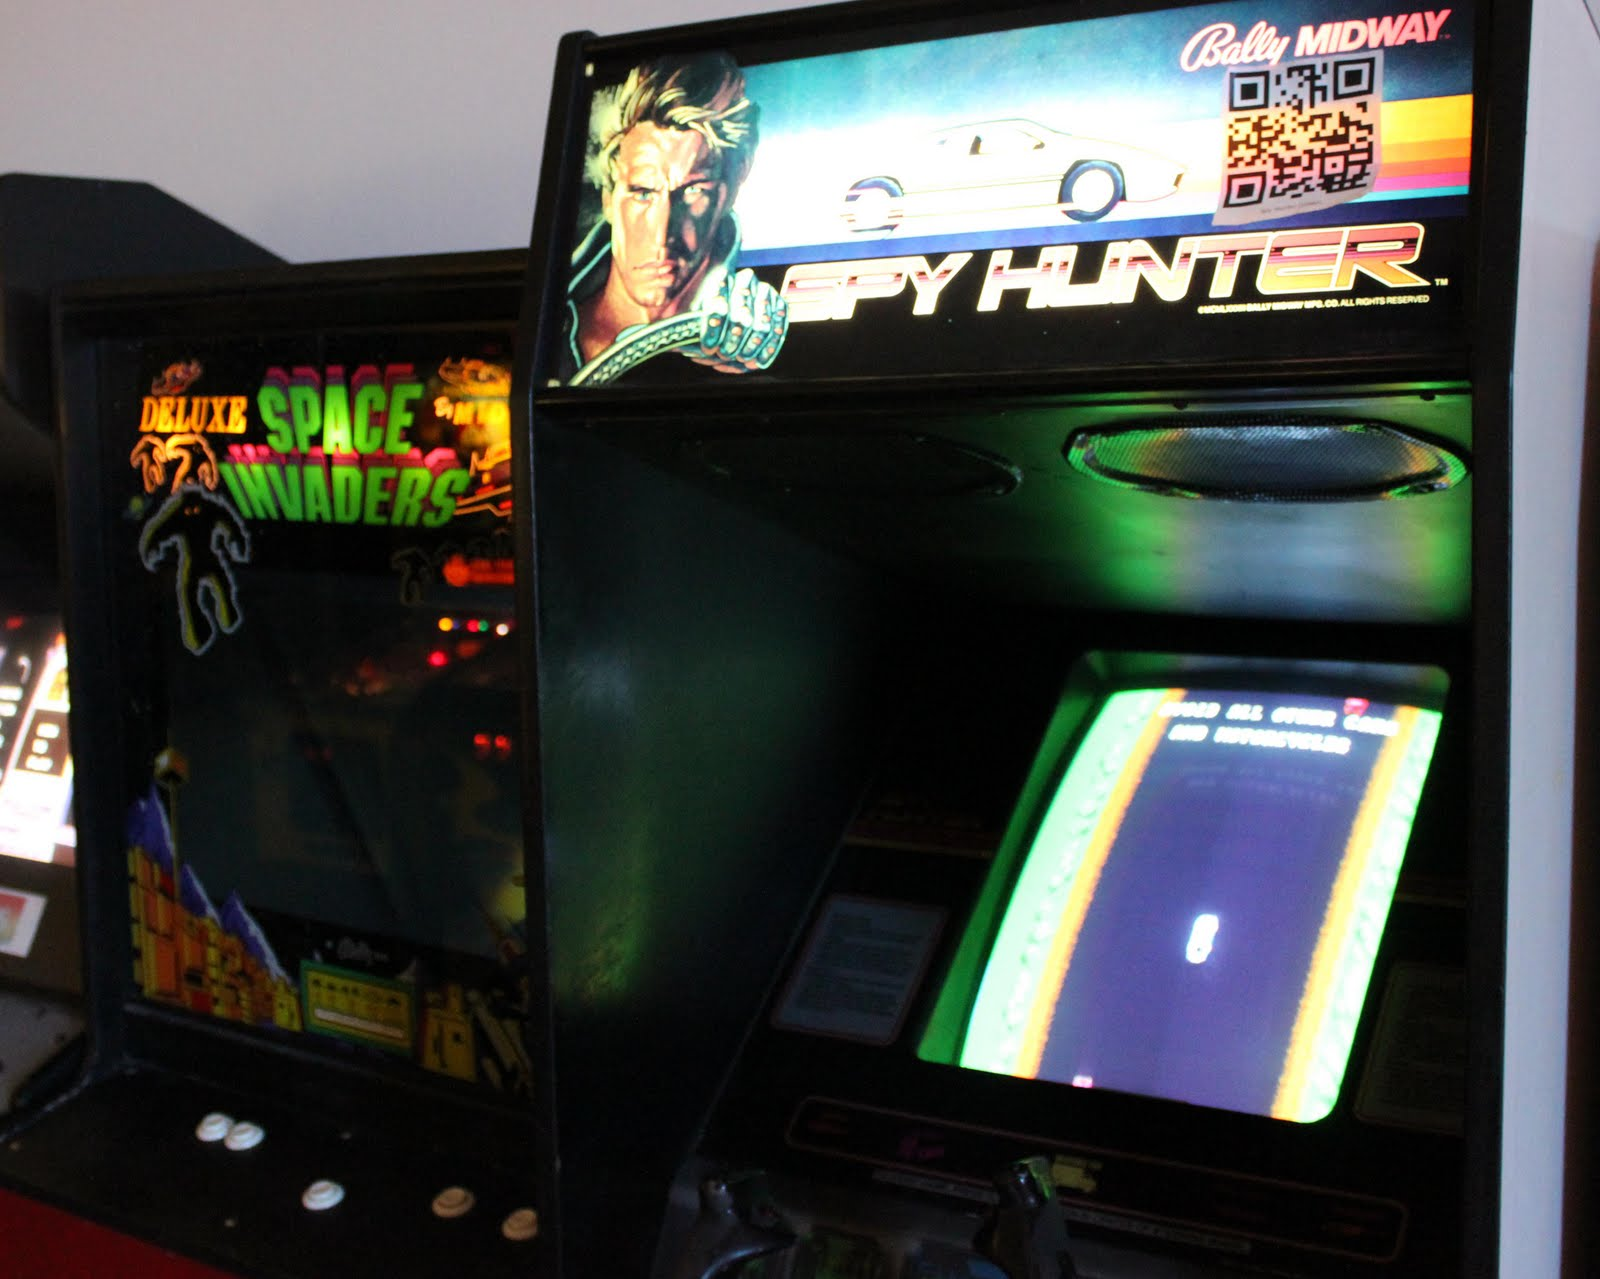 Serial trial nero 9. spy hunter arcade game.